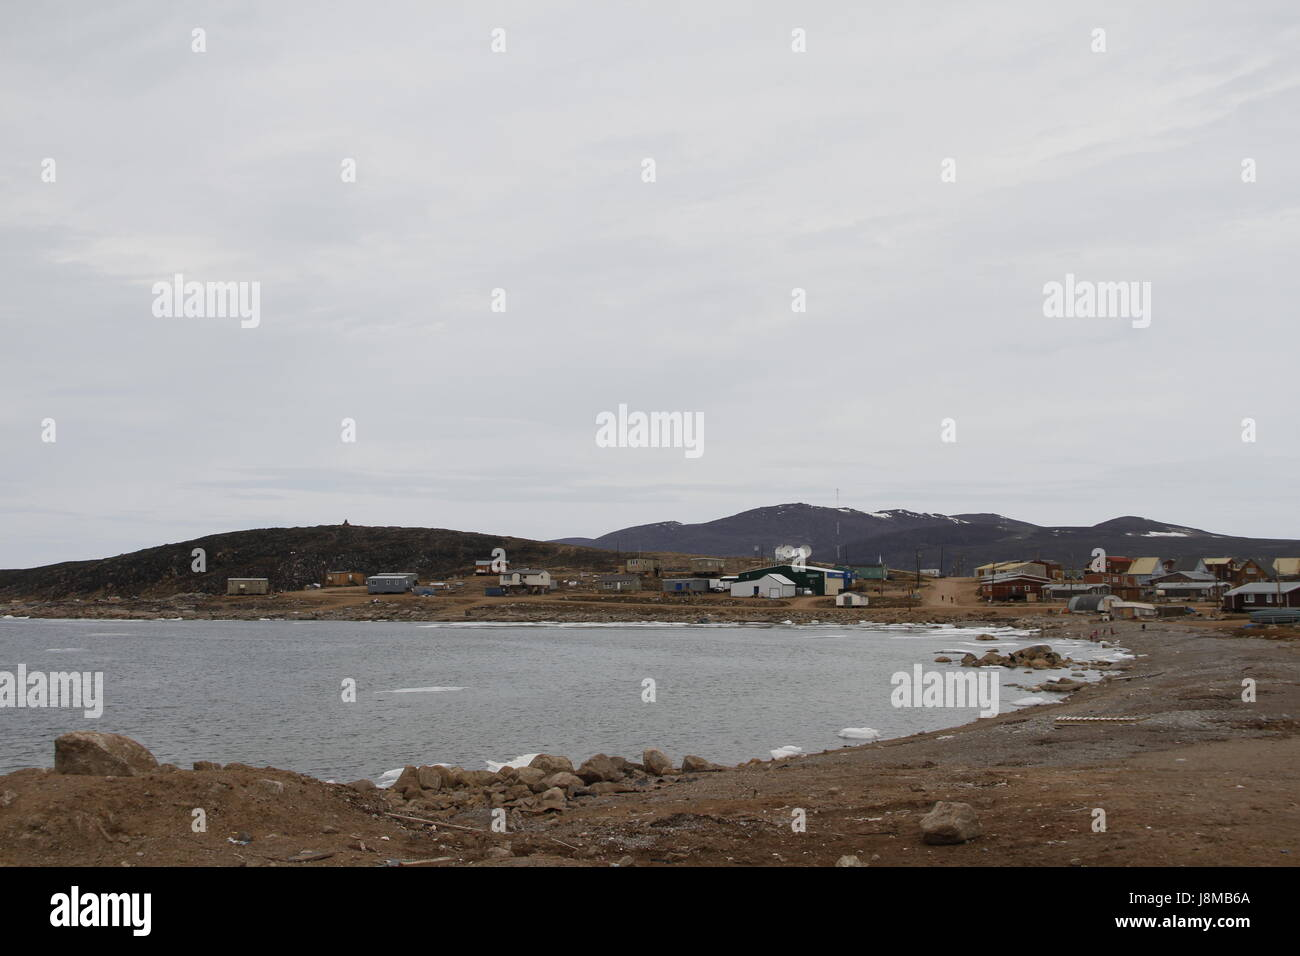 Overcast day in the Inuit community of Qikiqtarjuaq, Nunavut in the high Canadian arctic located on Broughton Island, - Stock Image